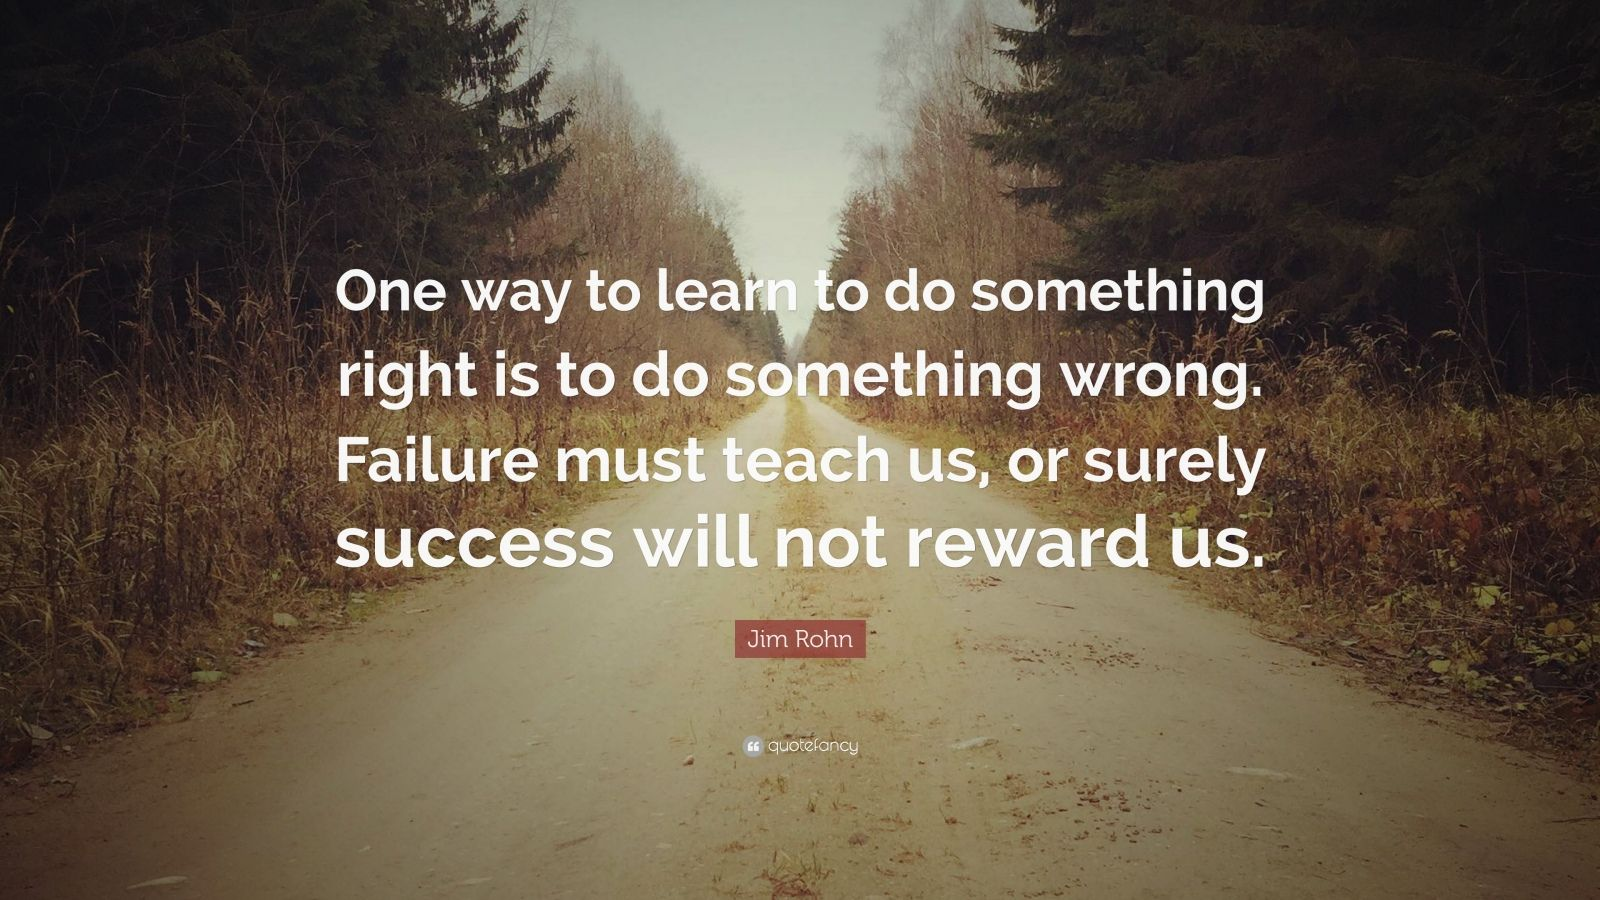 """Jim Rohn Quote: """"One way to learn to do something right is to do something wrong. Failure must teach us, or surely success will not reward us."""""""